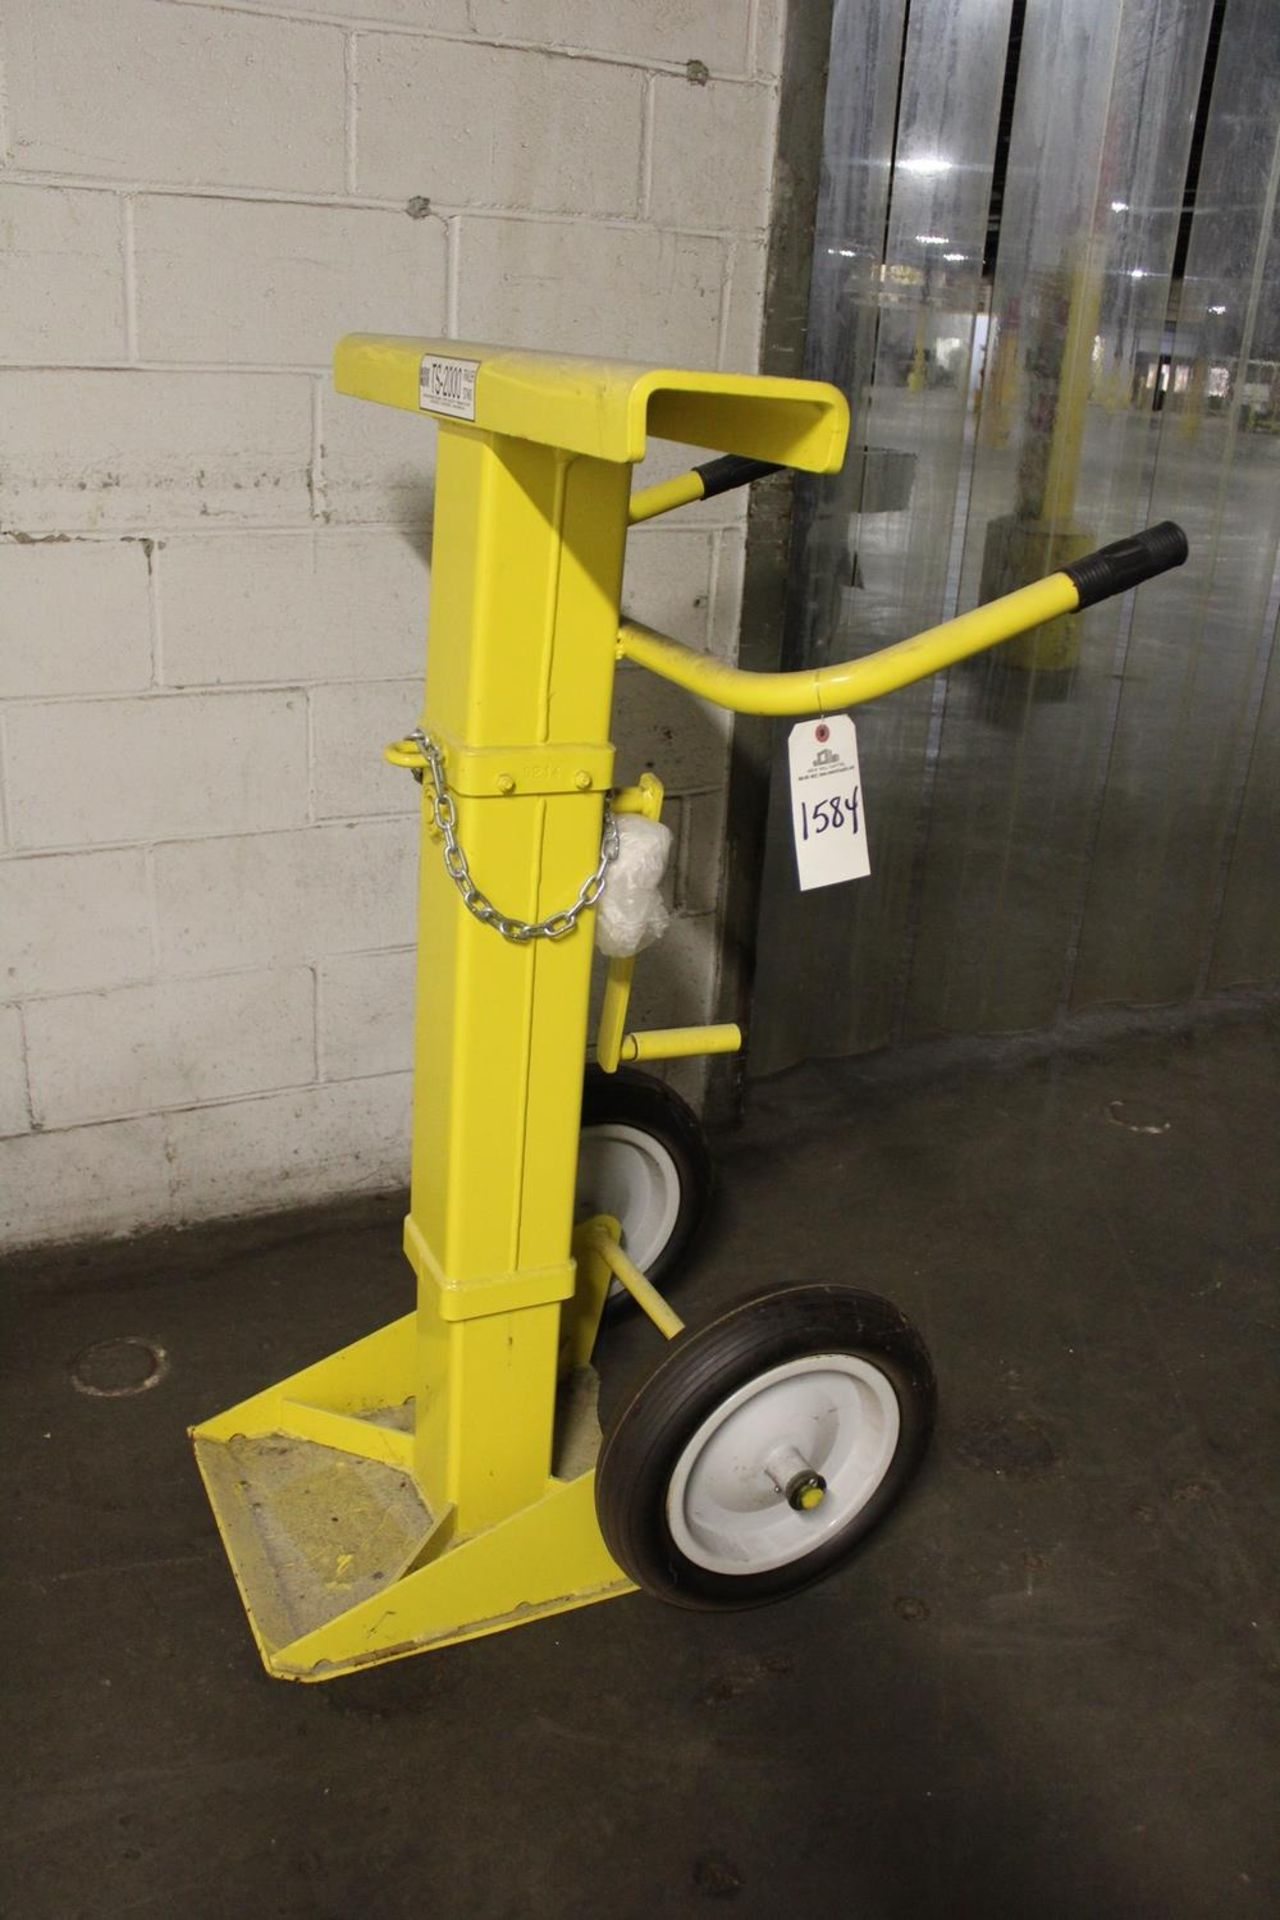 Lot 1584 - Rite Hite TS-2000 Trailer Stand - Subject to Bulk Bid Lot 15 | Rig Fee: Hand Carry or Contact Rigger